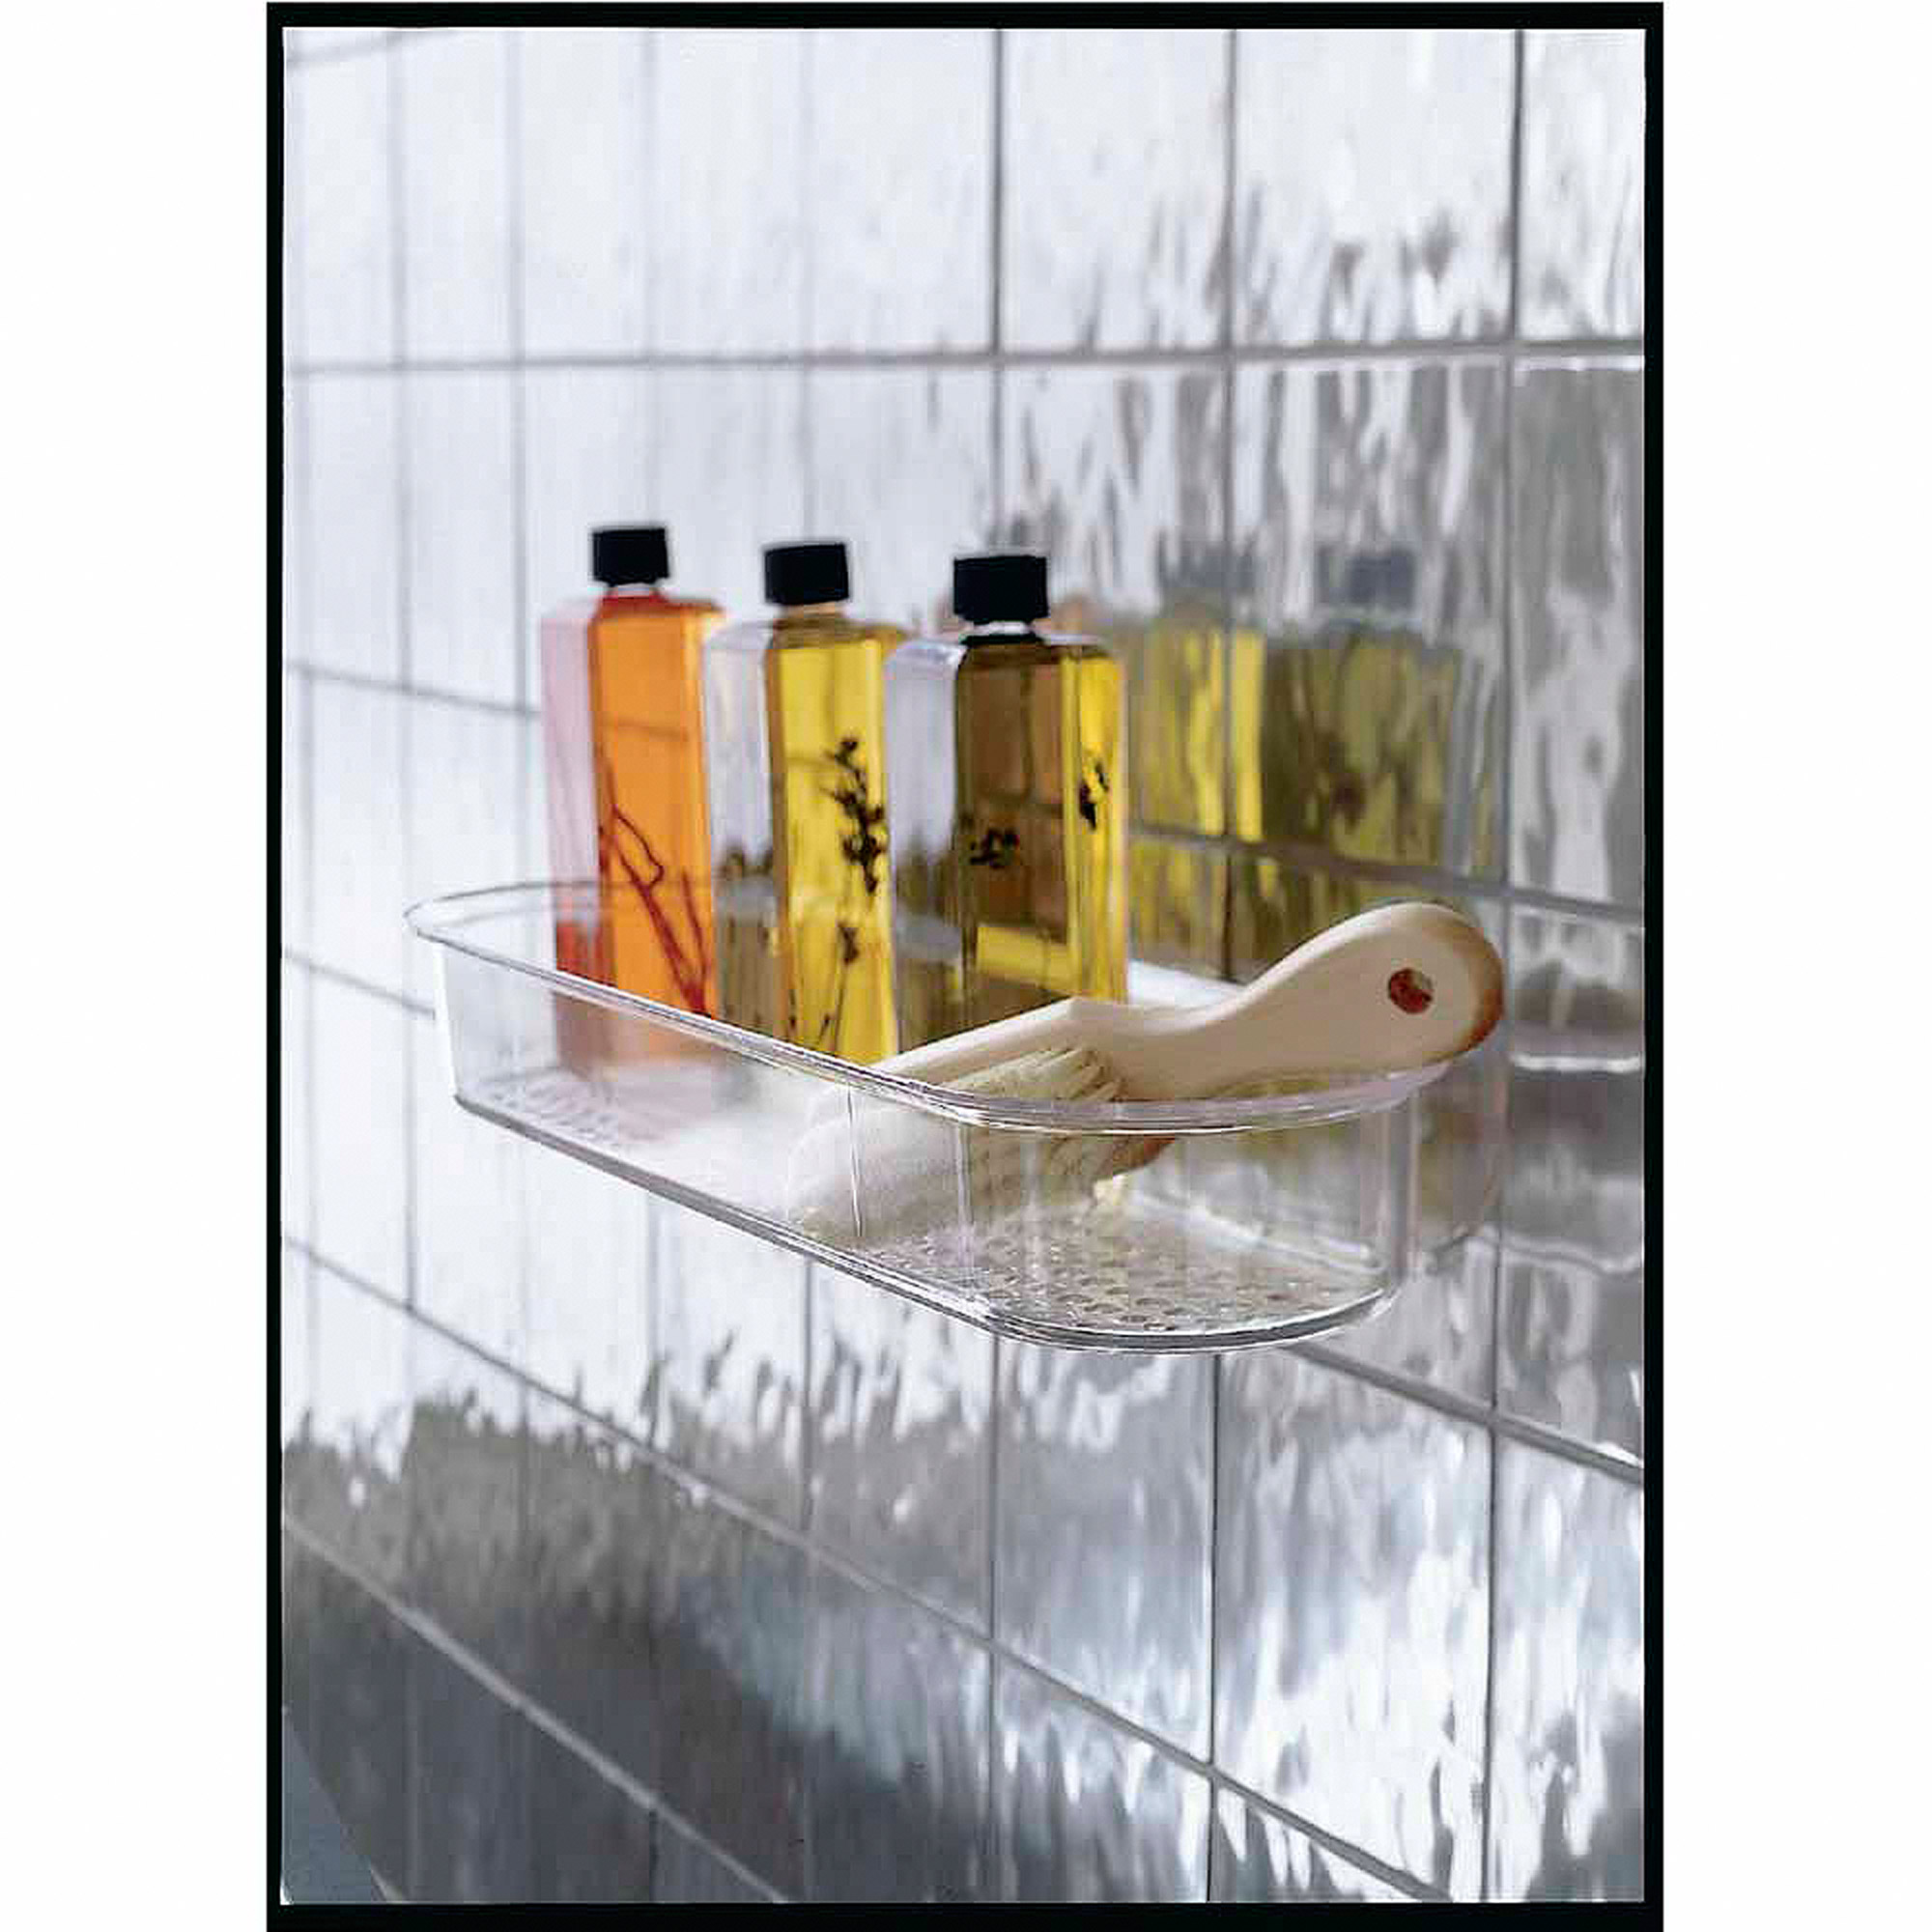 InterDesign Bathroom Shower Suction Caddy Holder For Shampoo, Conditioner,  Soap, Clear